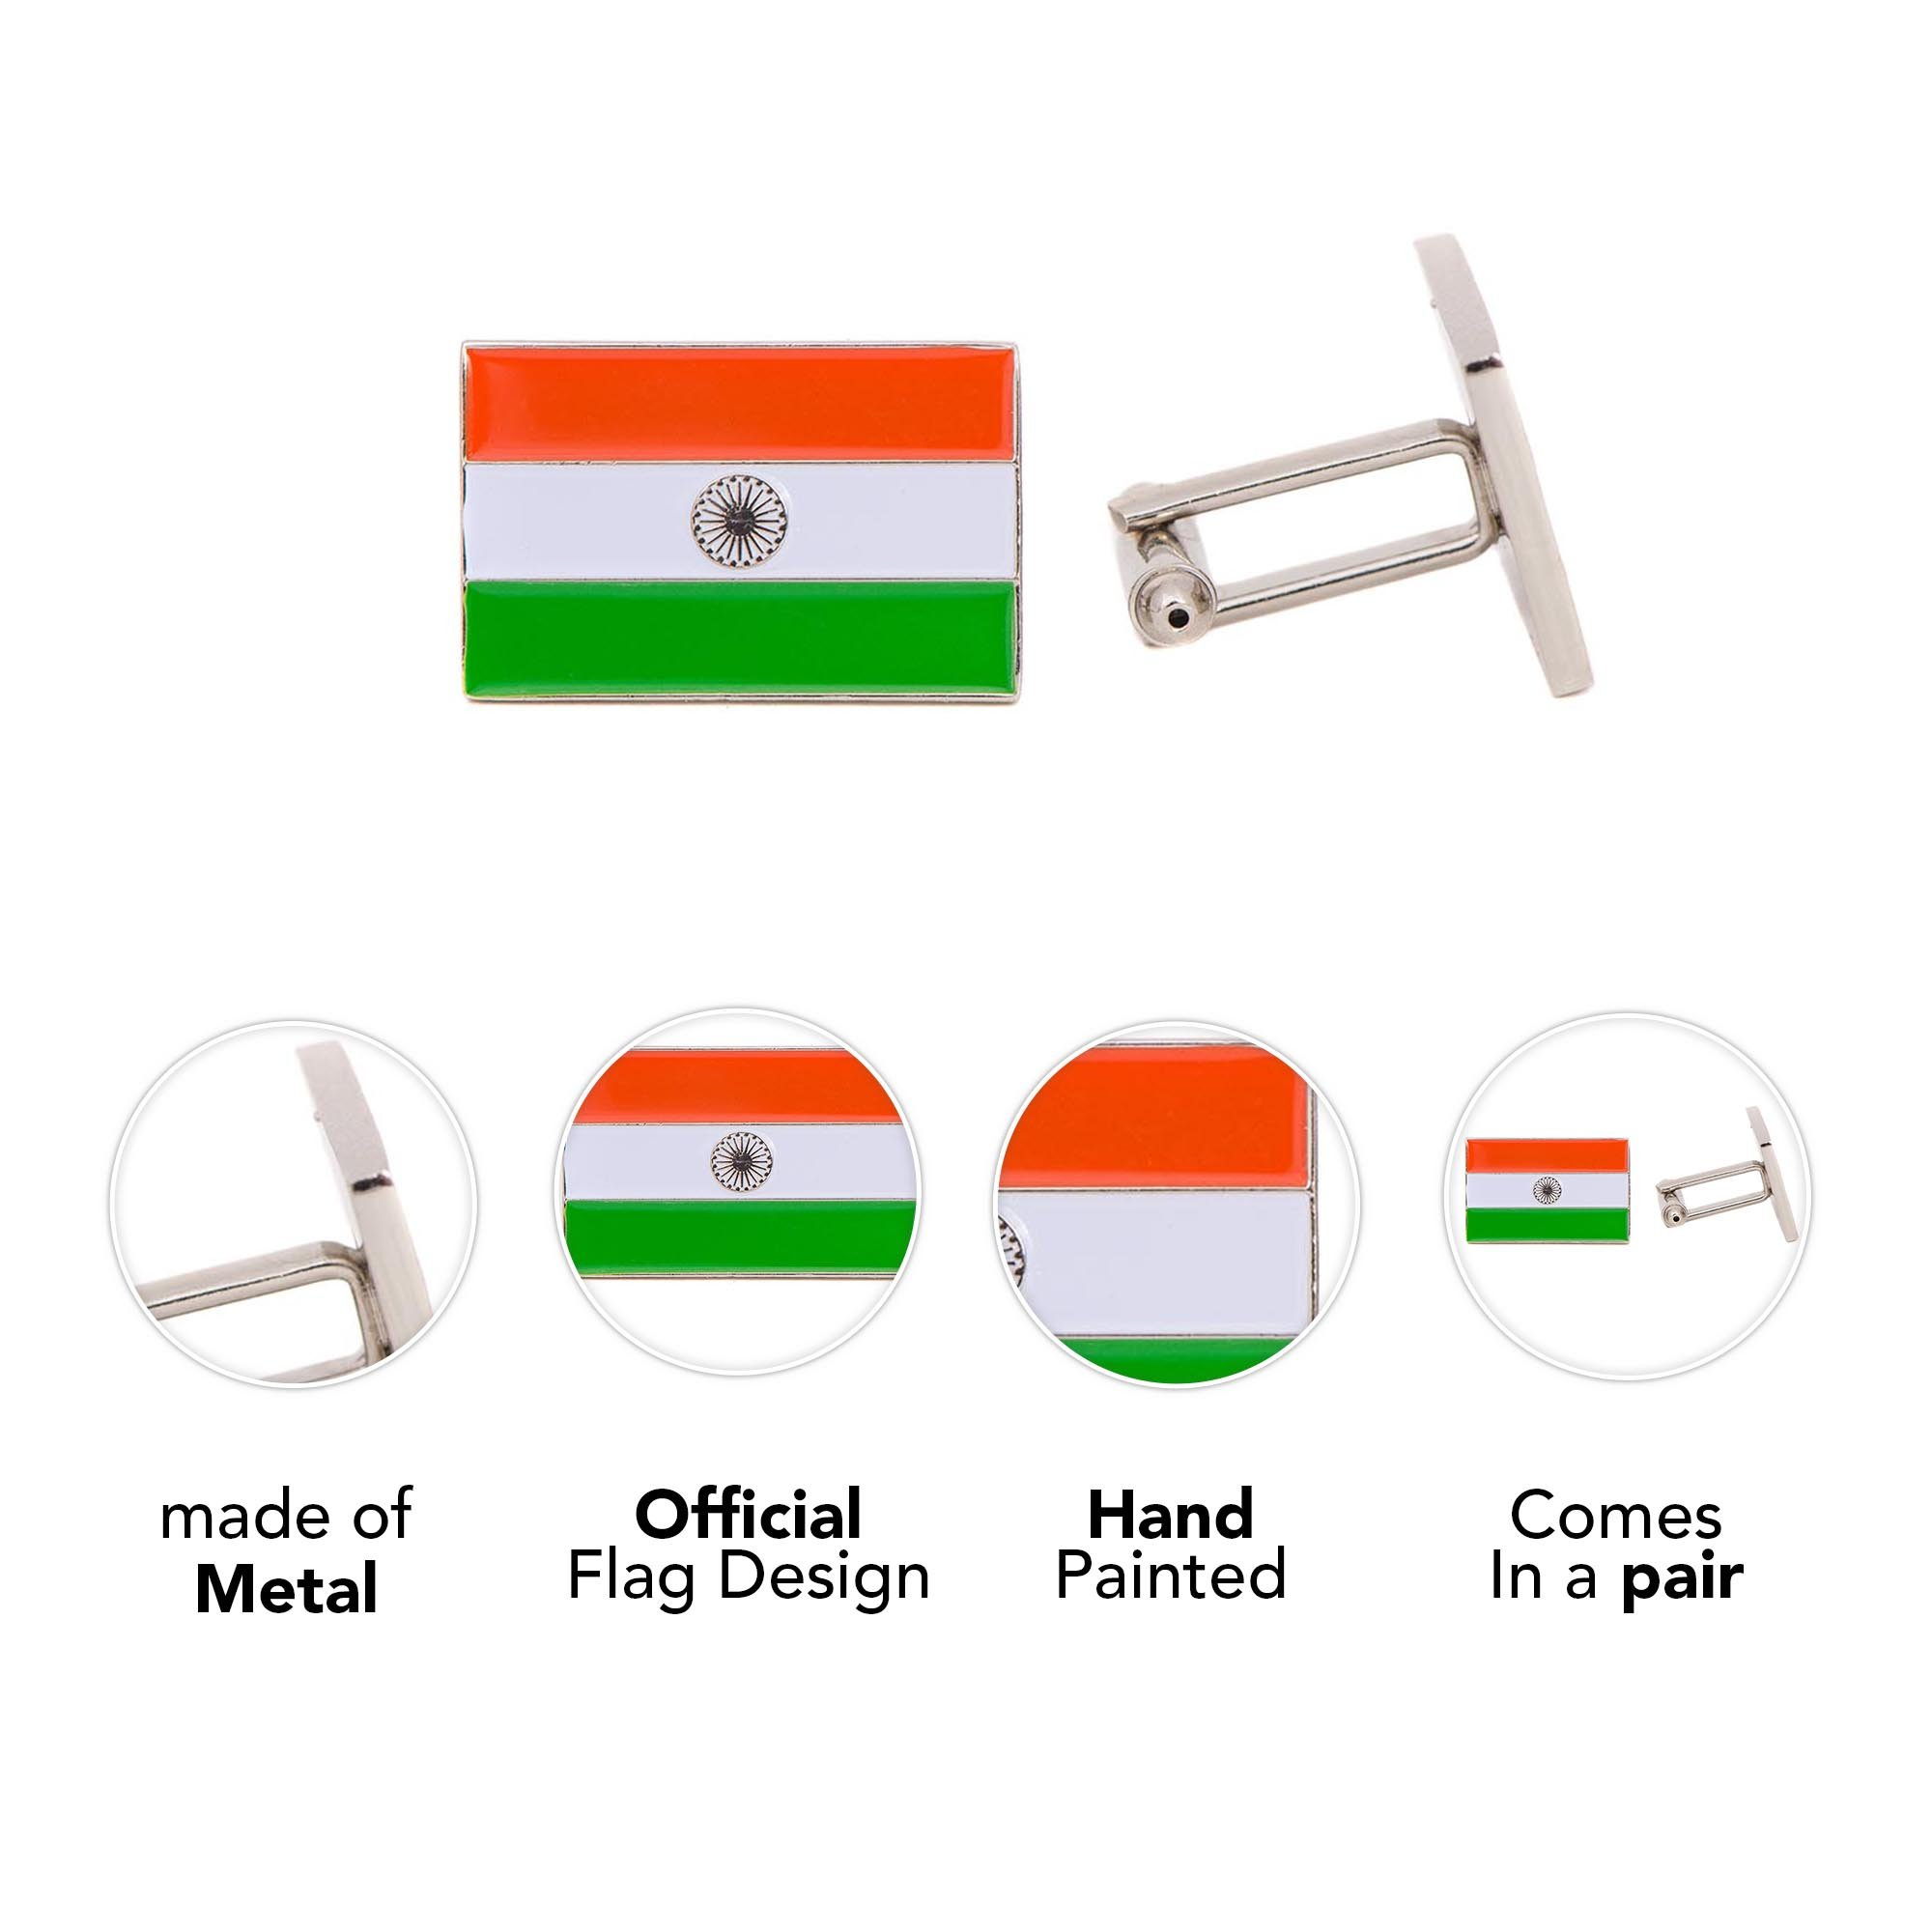 Desert Cactus India Rectangle Country Flag Cufflinks Formal Wear Blazer For French Cuff Shirt Indian by Desert Cactus (Image #4)